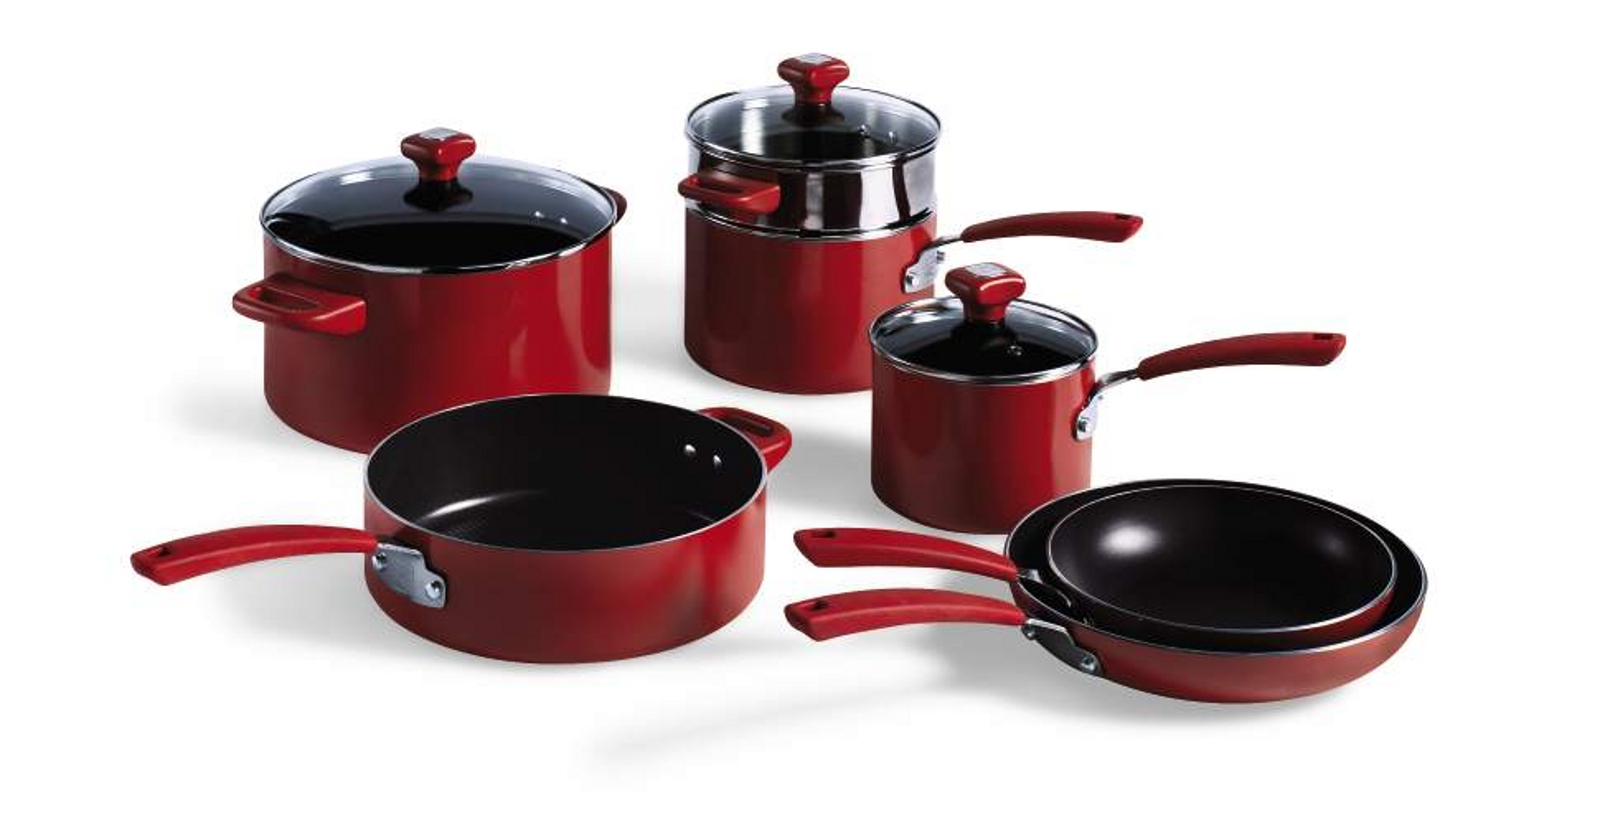 Kenmore 10Pc Aluminum Non-Stick Cookware Set